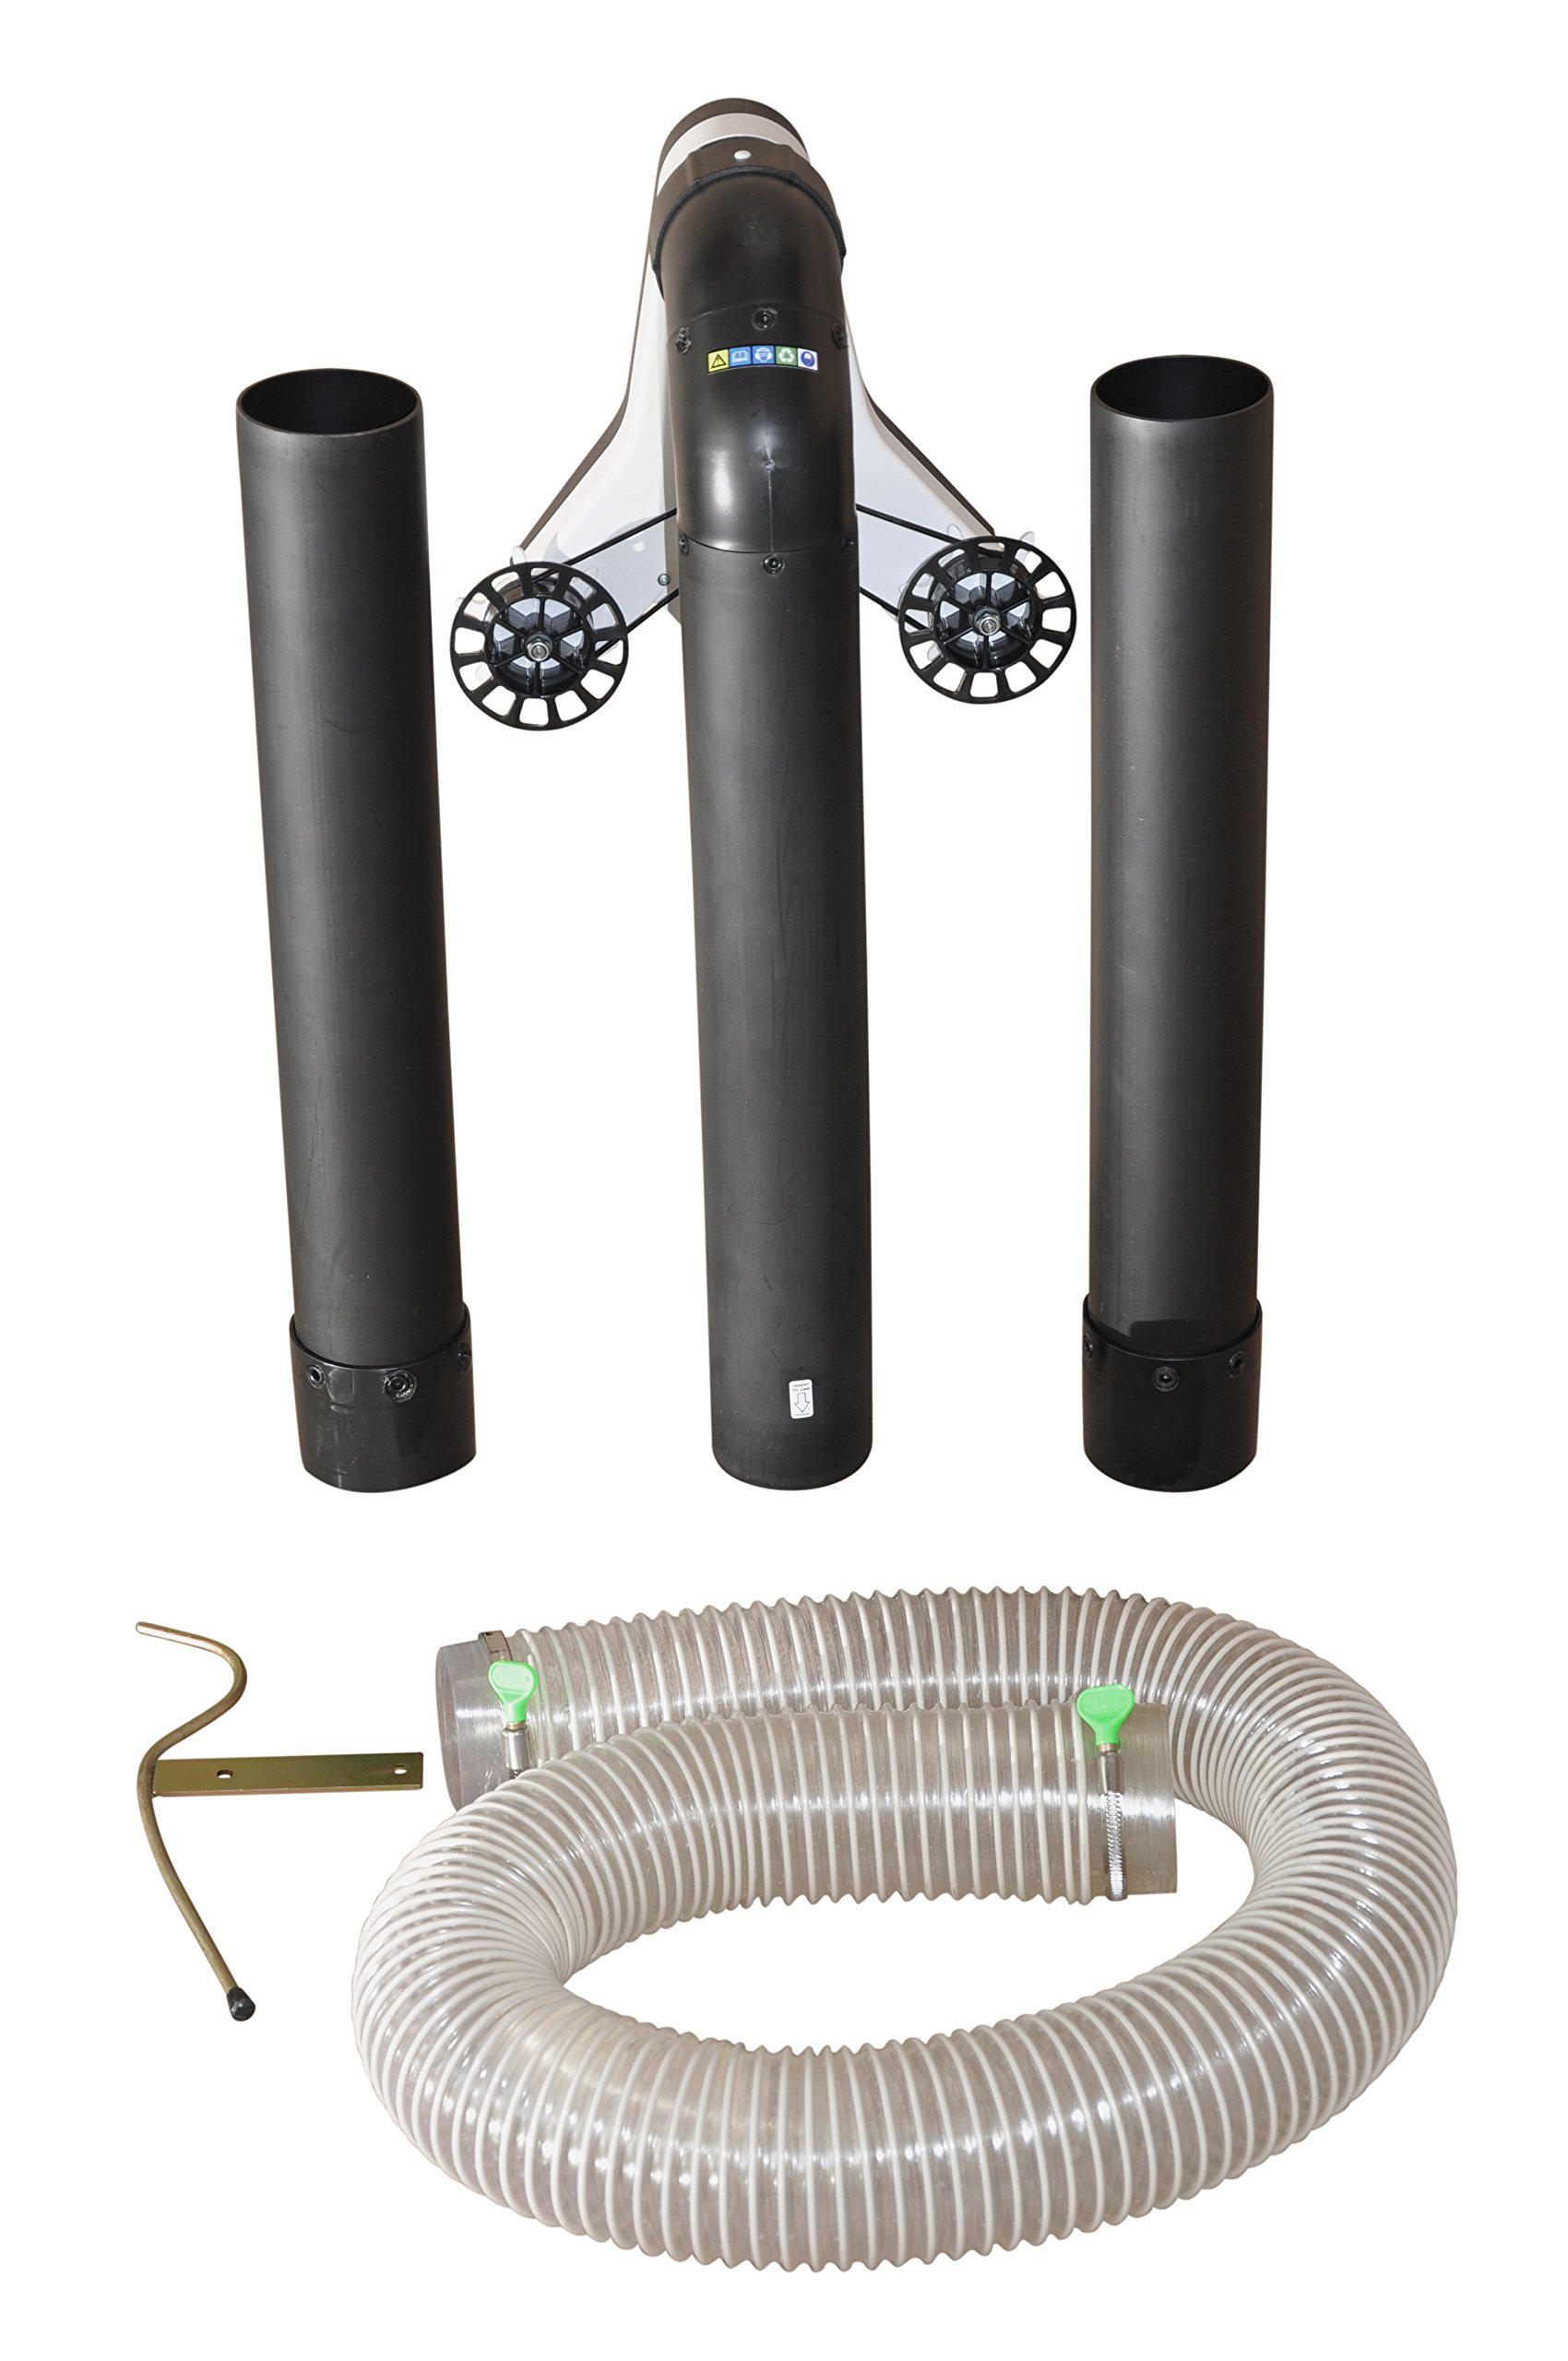 gutter cleaning accessories